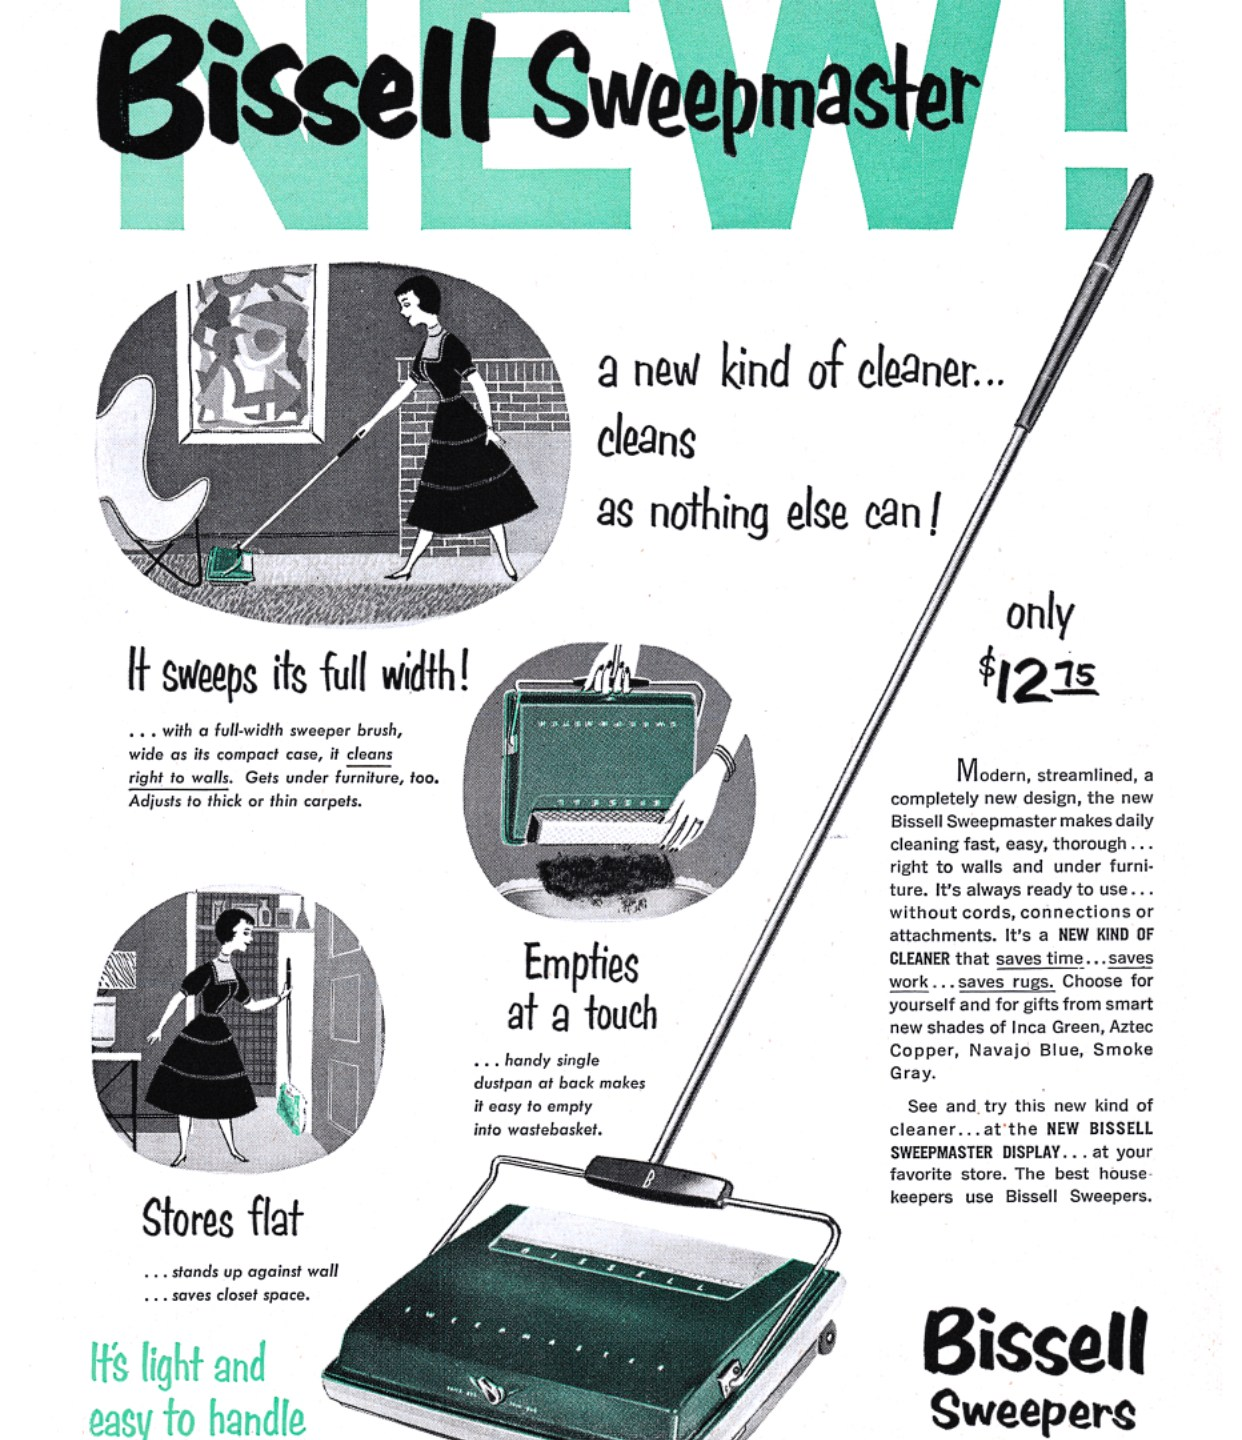 The Bissell